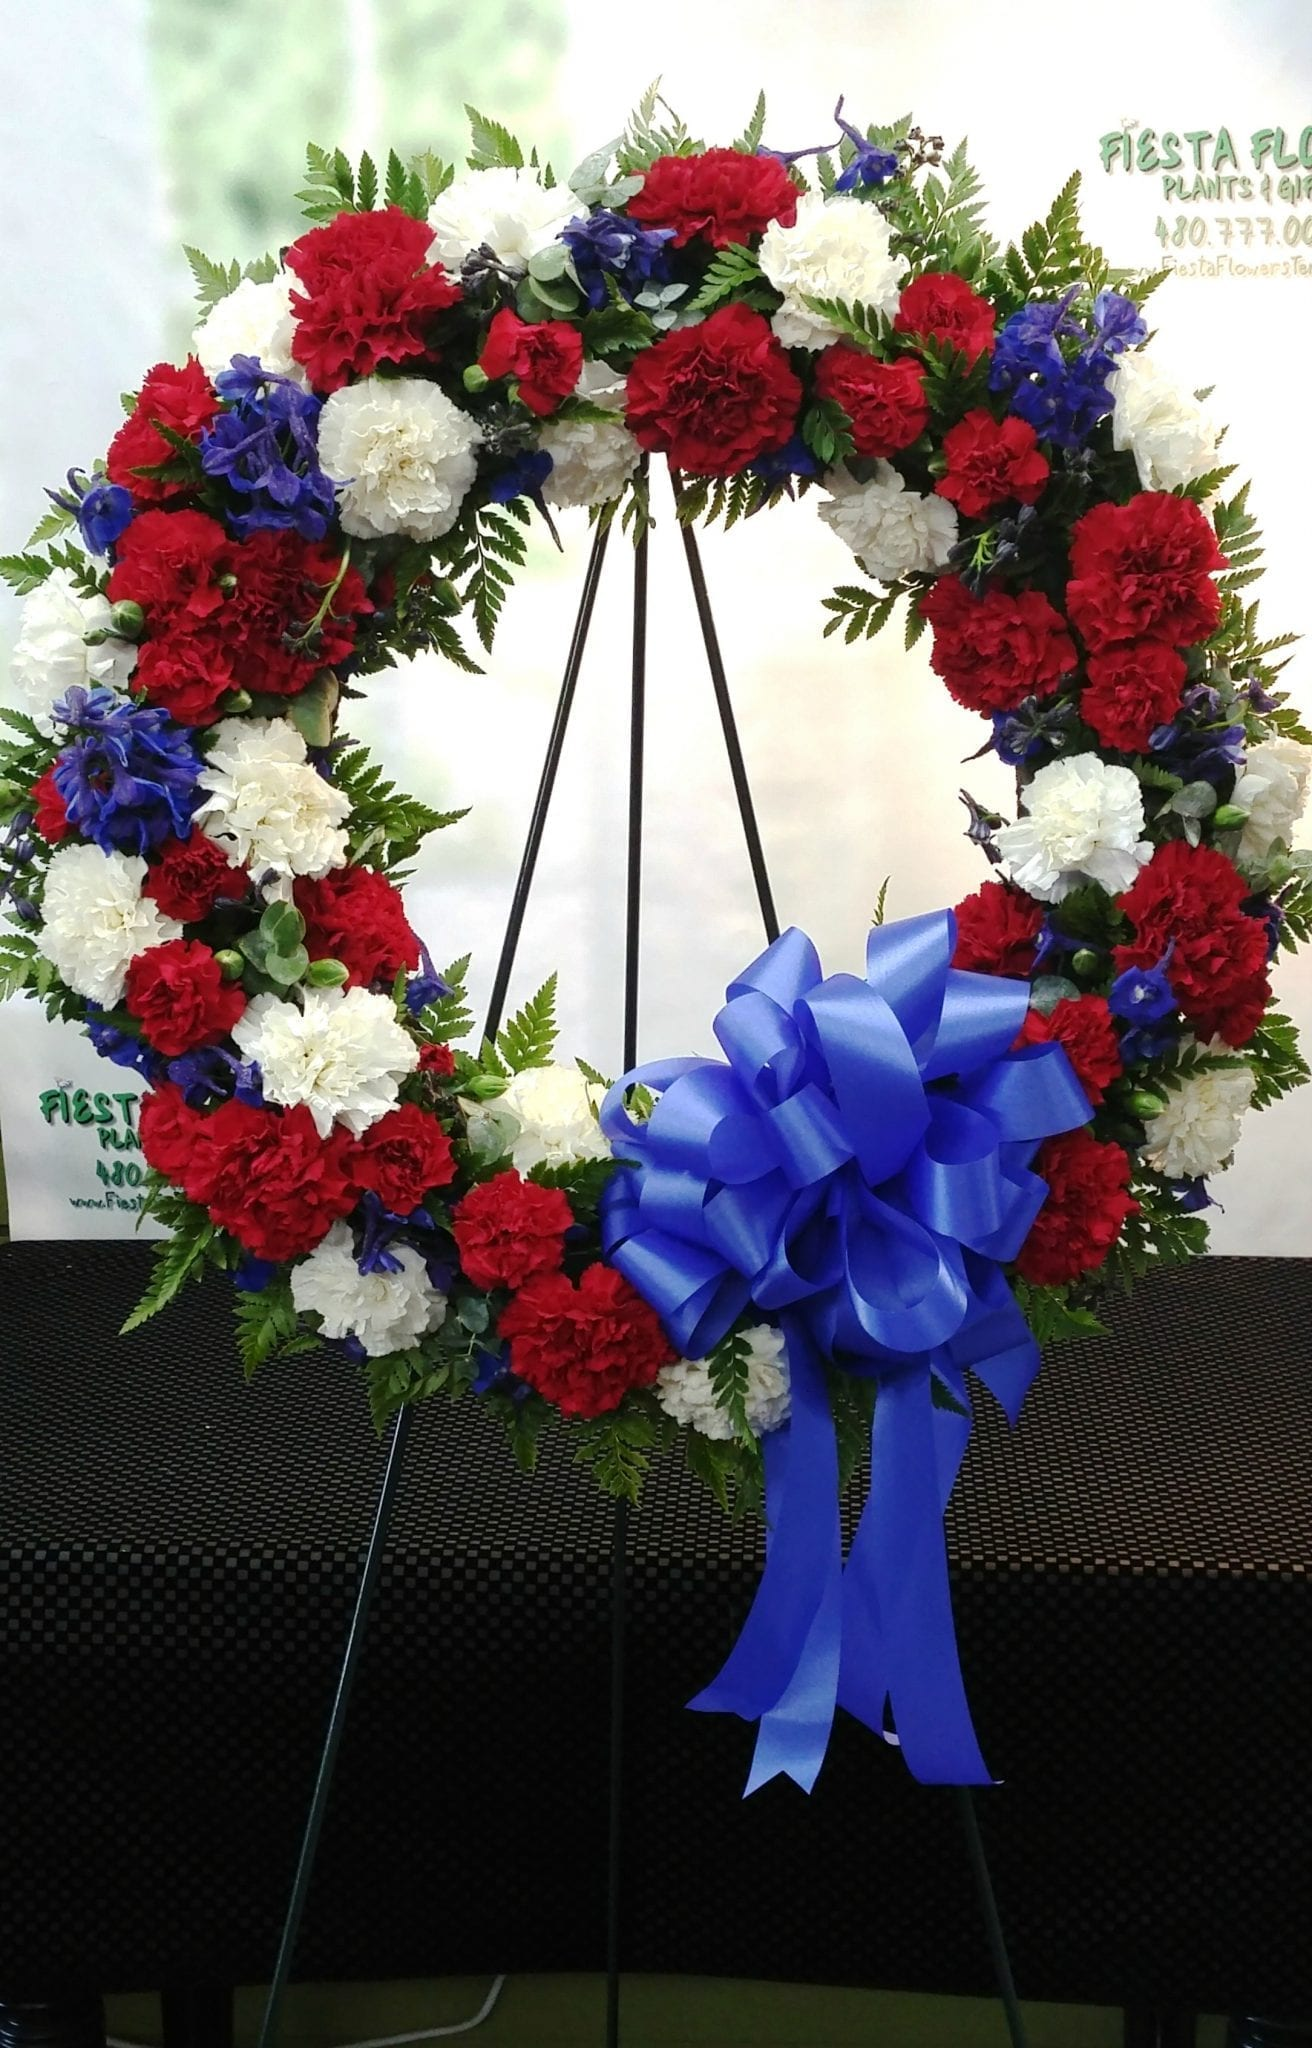 Tribute Wreath Red White And Blue Fiesta Flowers Plants Gifts